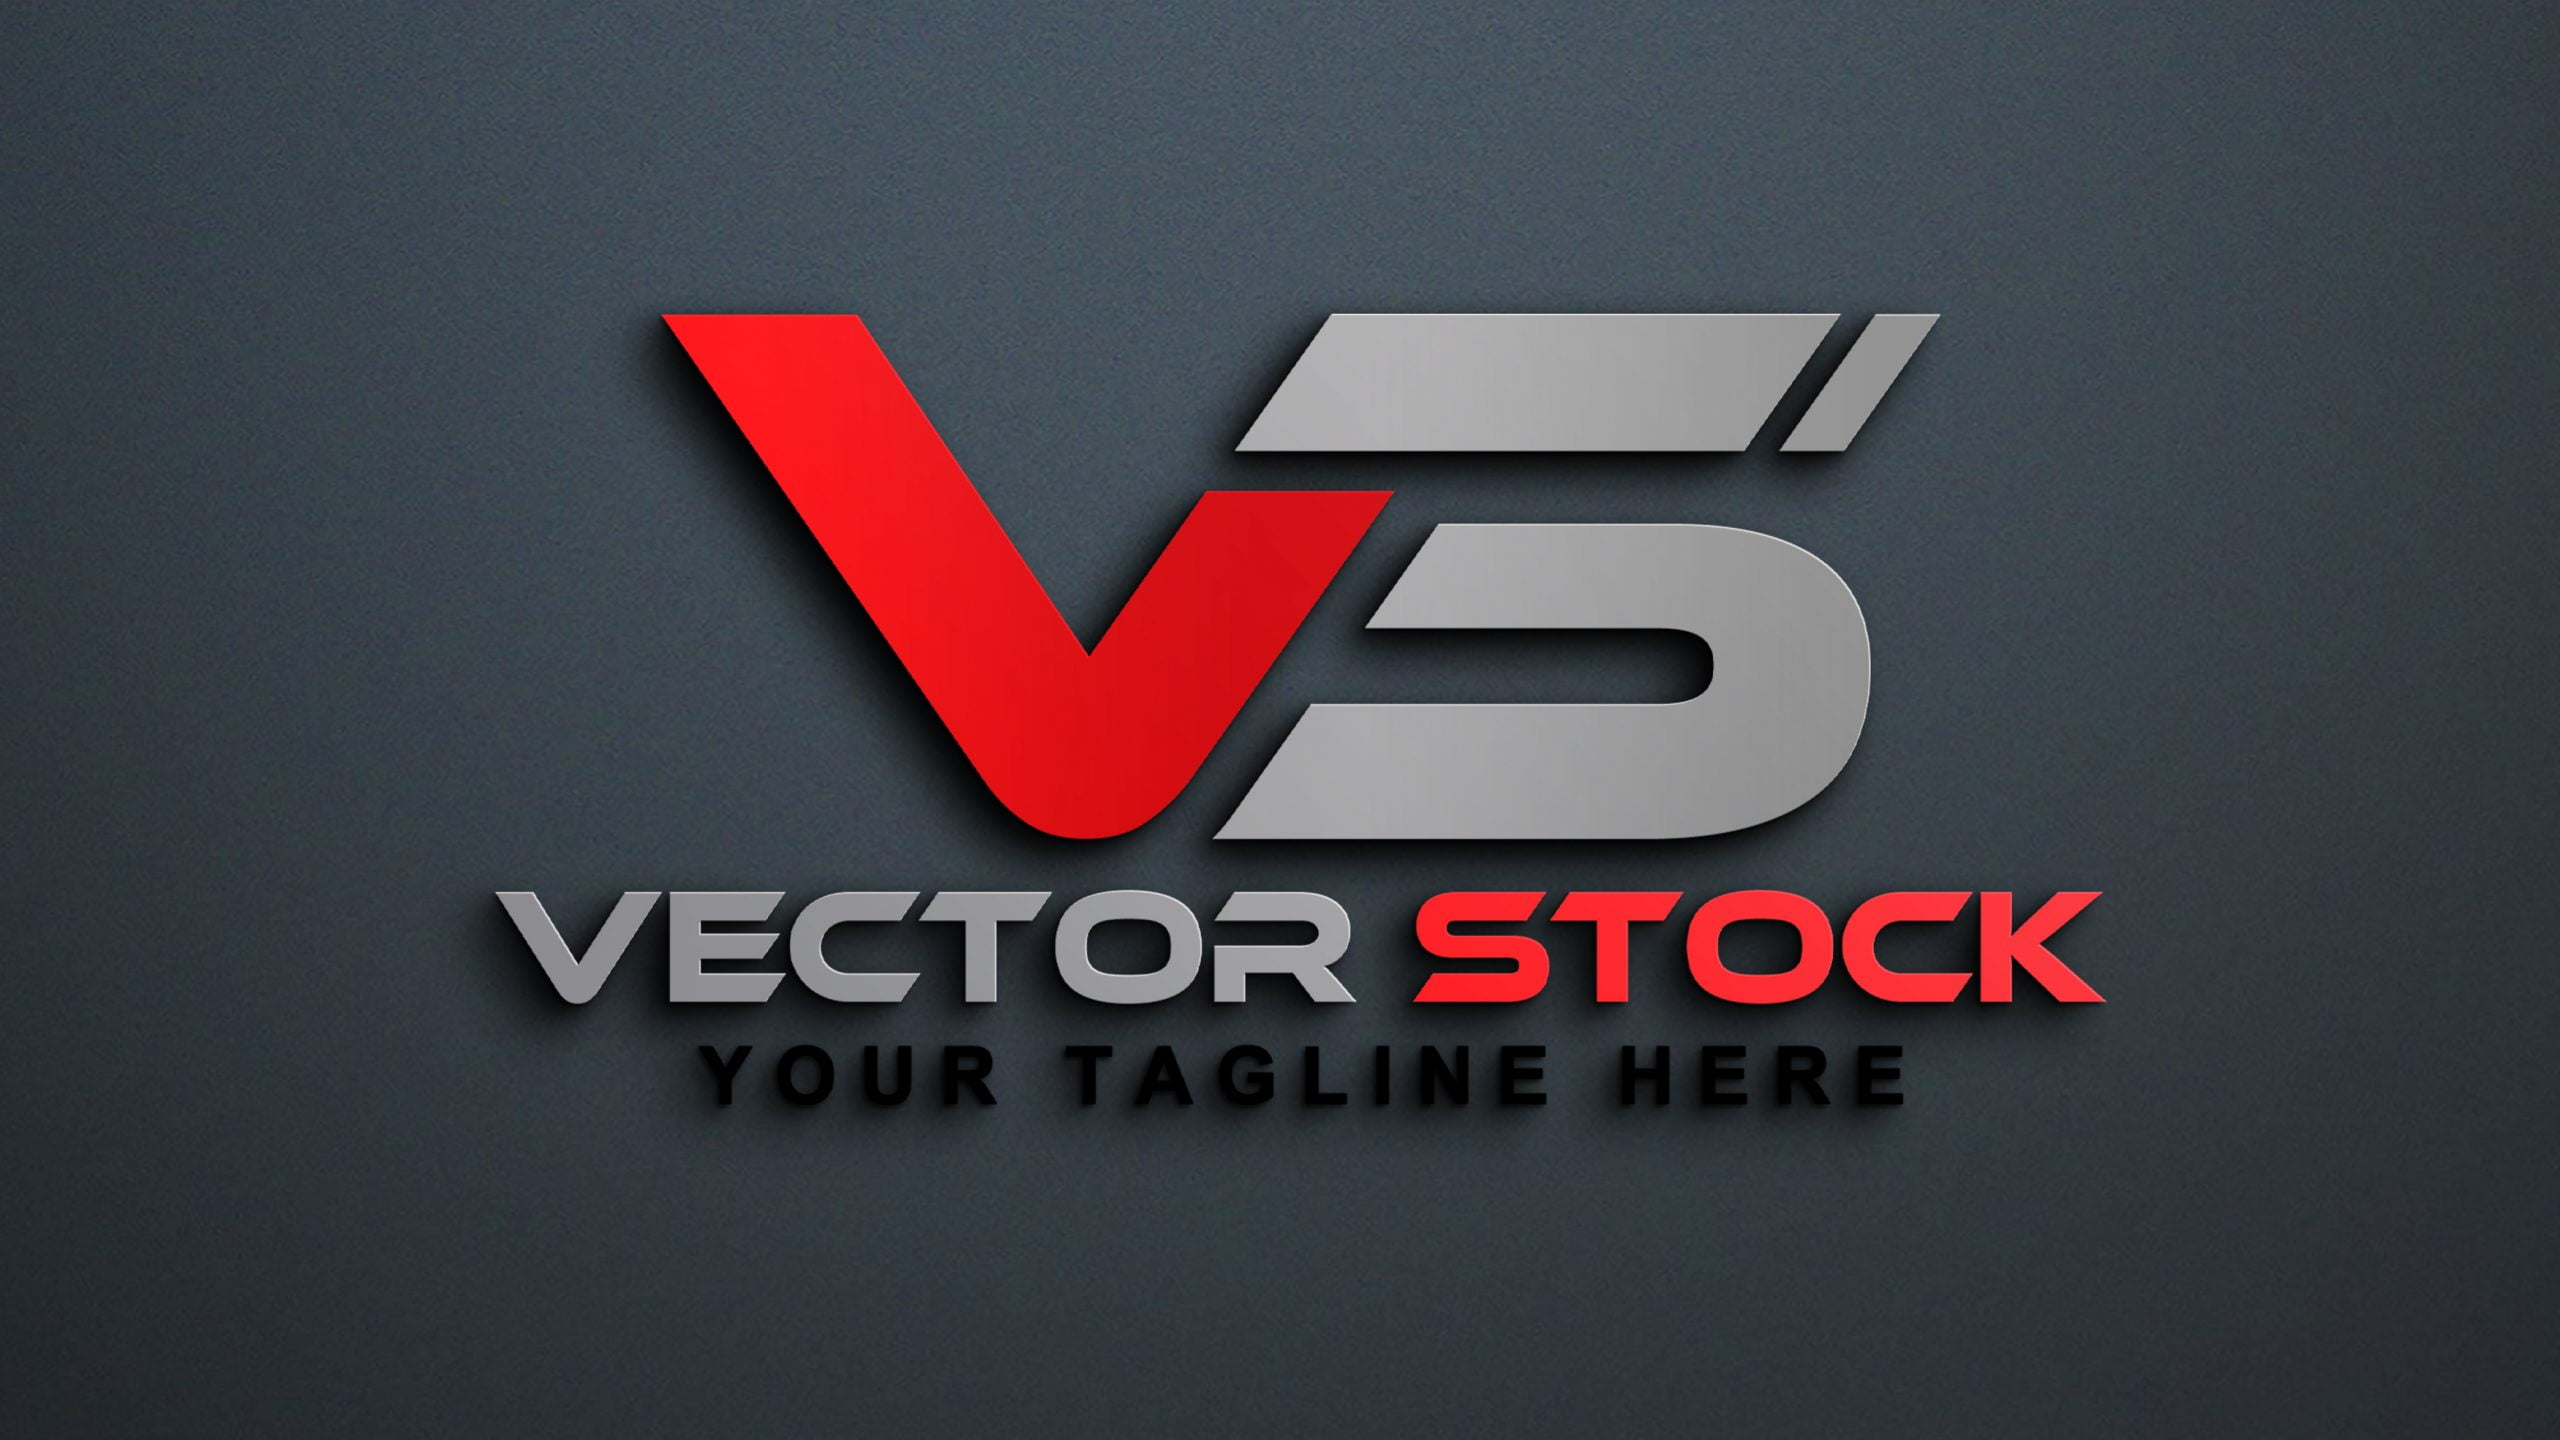 Free Vector Stock Logo Design PSD by GraphicsFamily